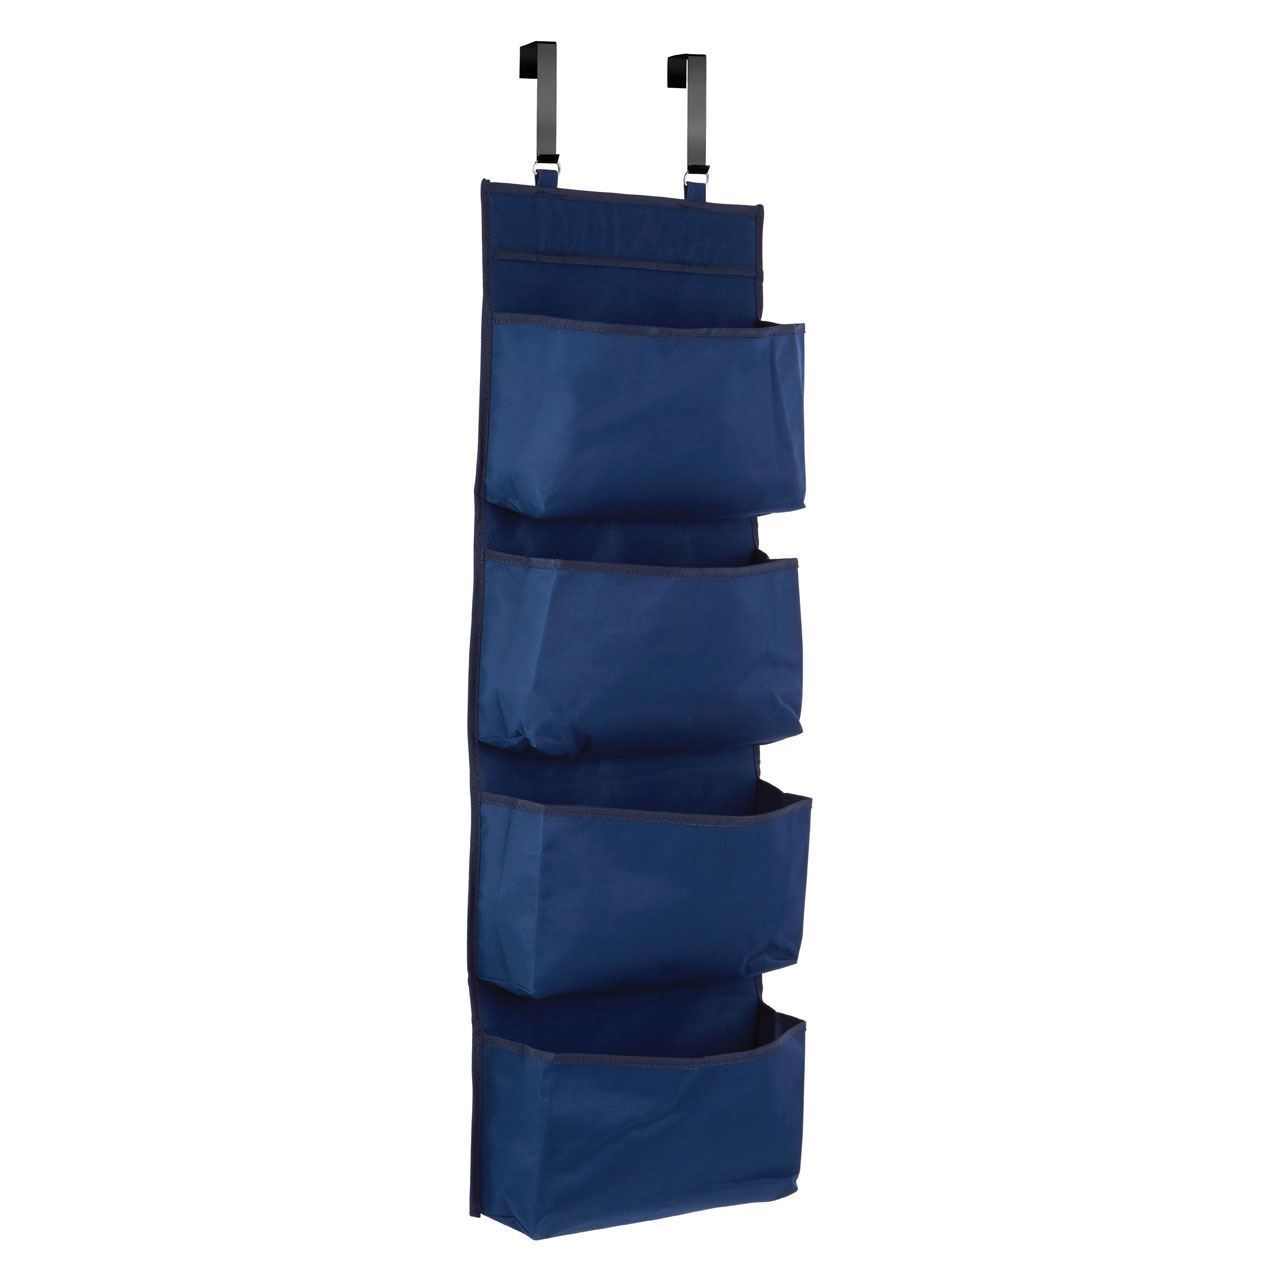 4 TIER HANGING OVER ORGANISER